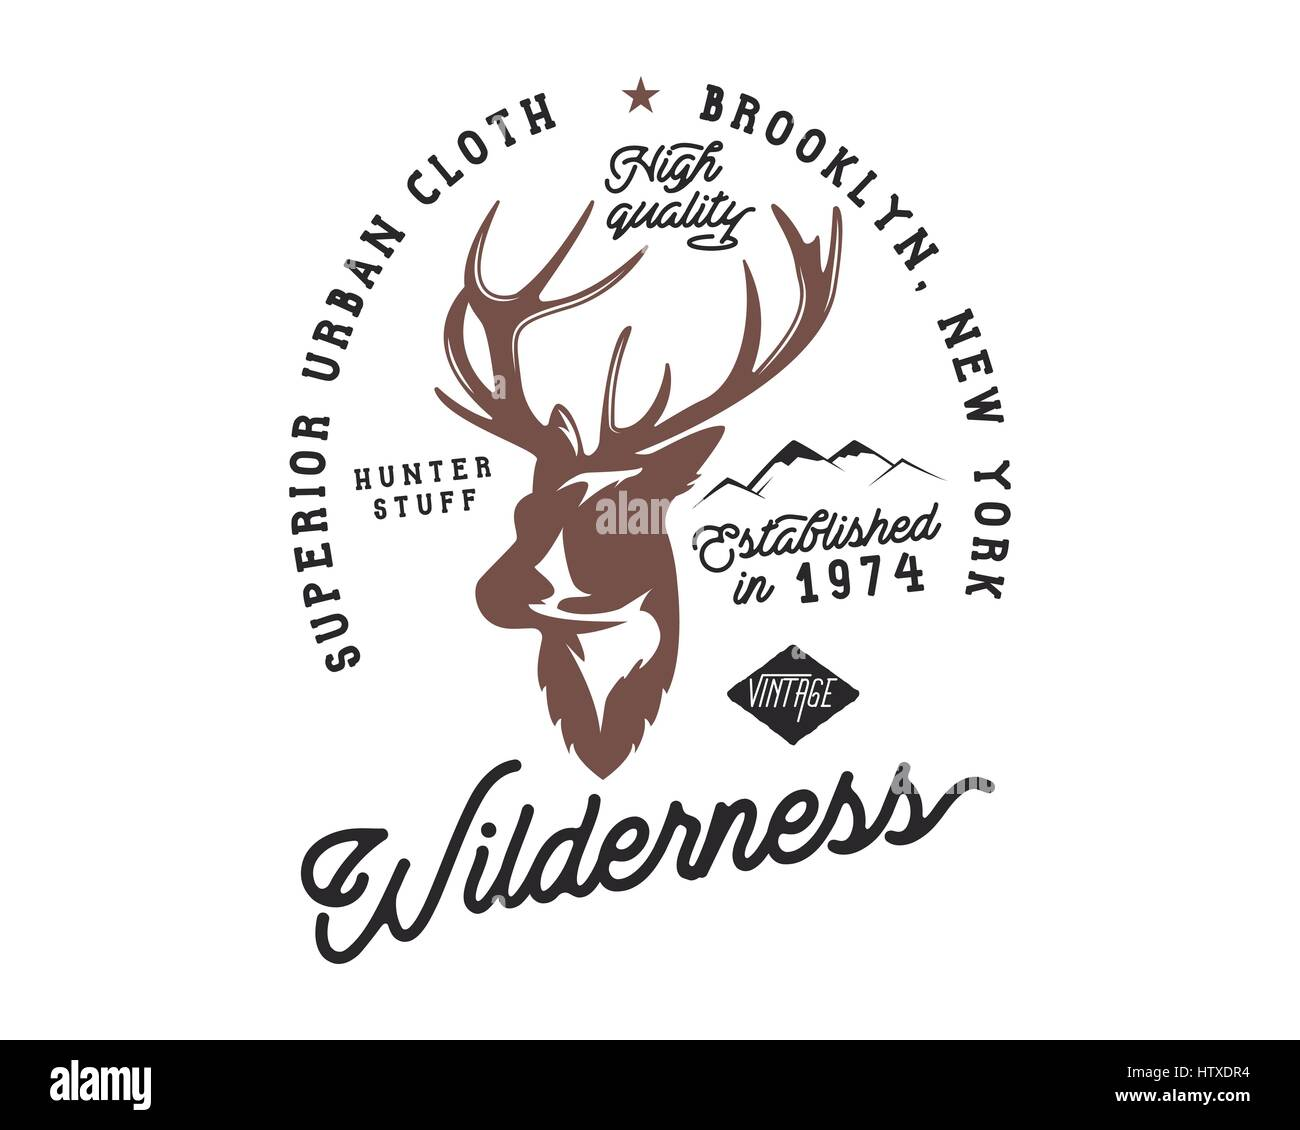 Hand Drawn Vintage Camping Badge And Hiking Label With Design Elements Typography Included Deer Head Mountains Quote Text Wilderness